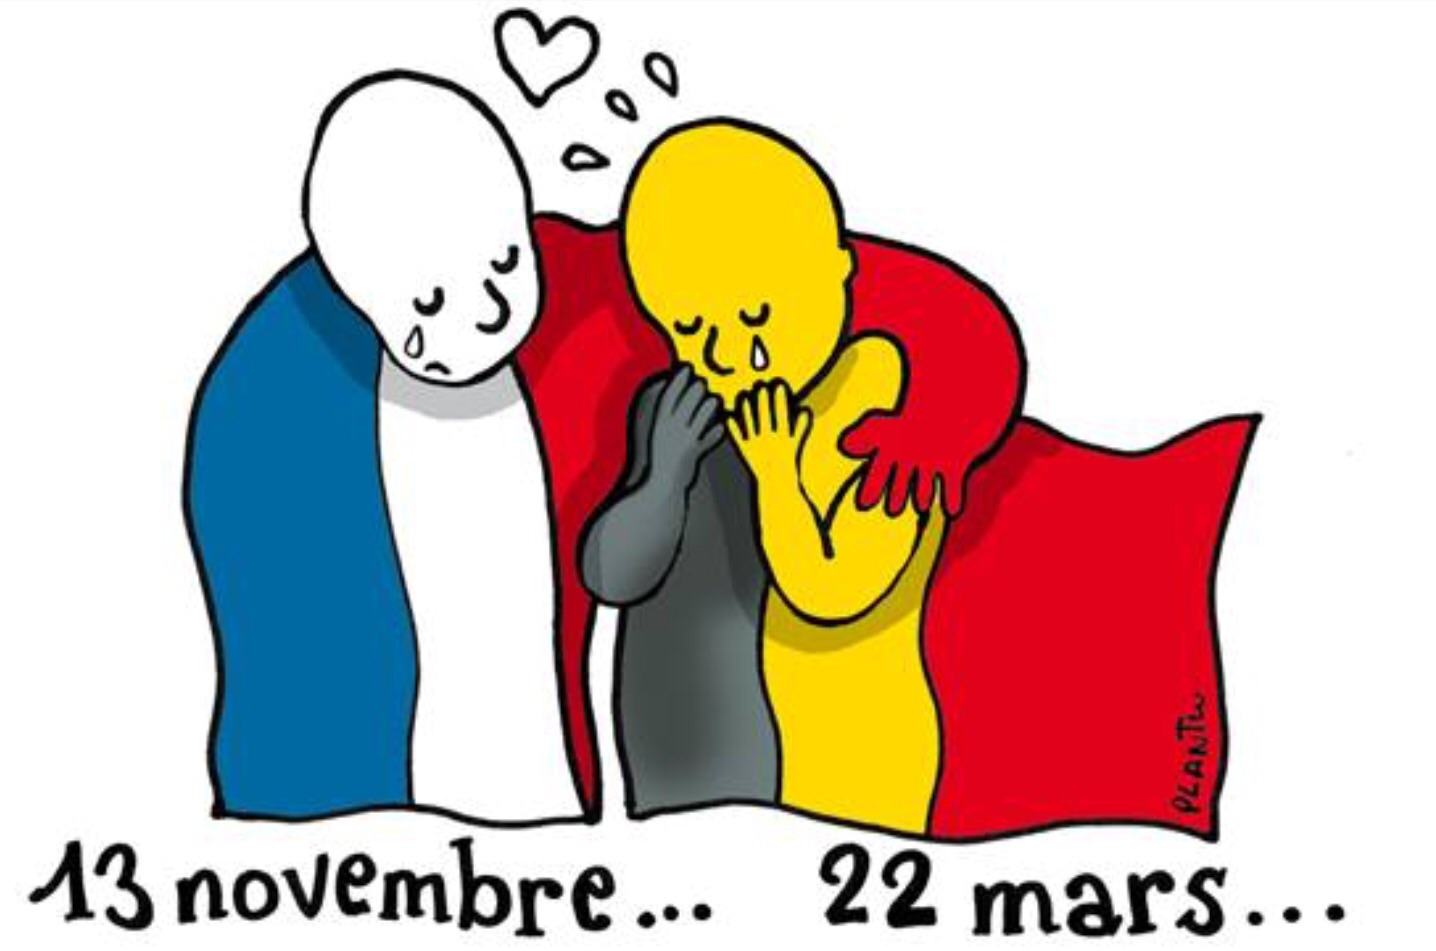 Paris ...... Bruxelles ......